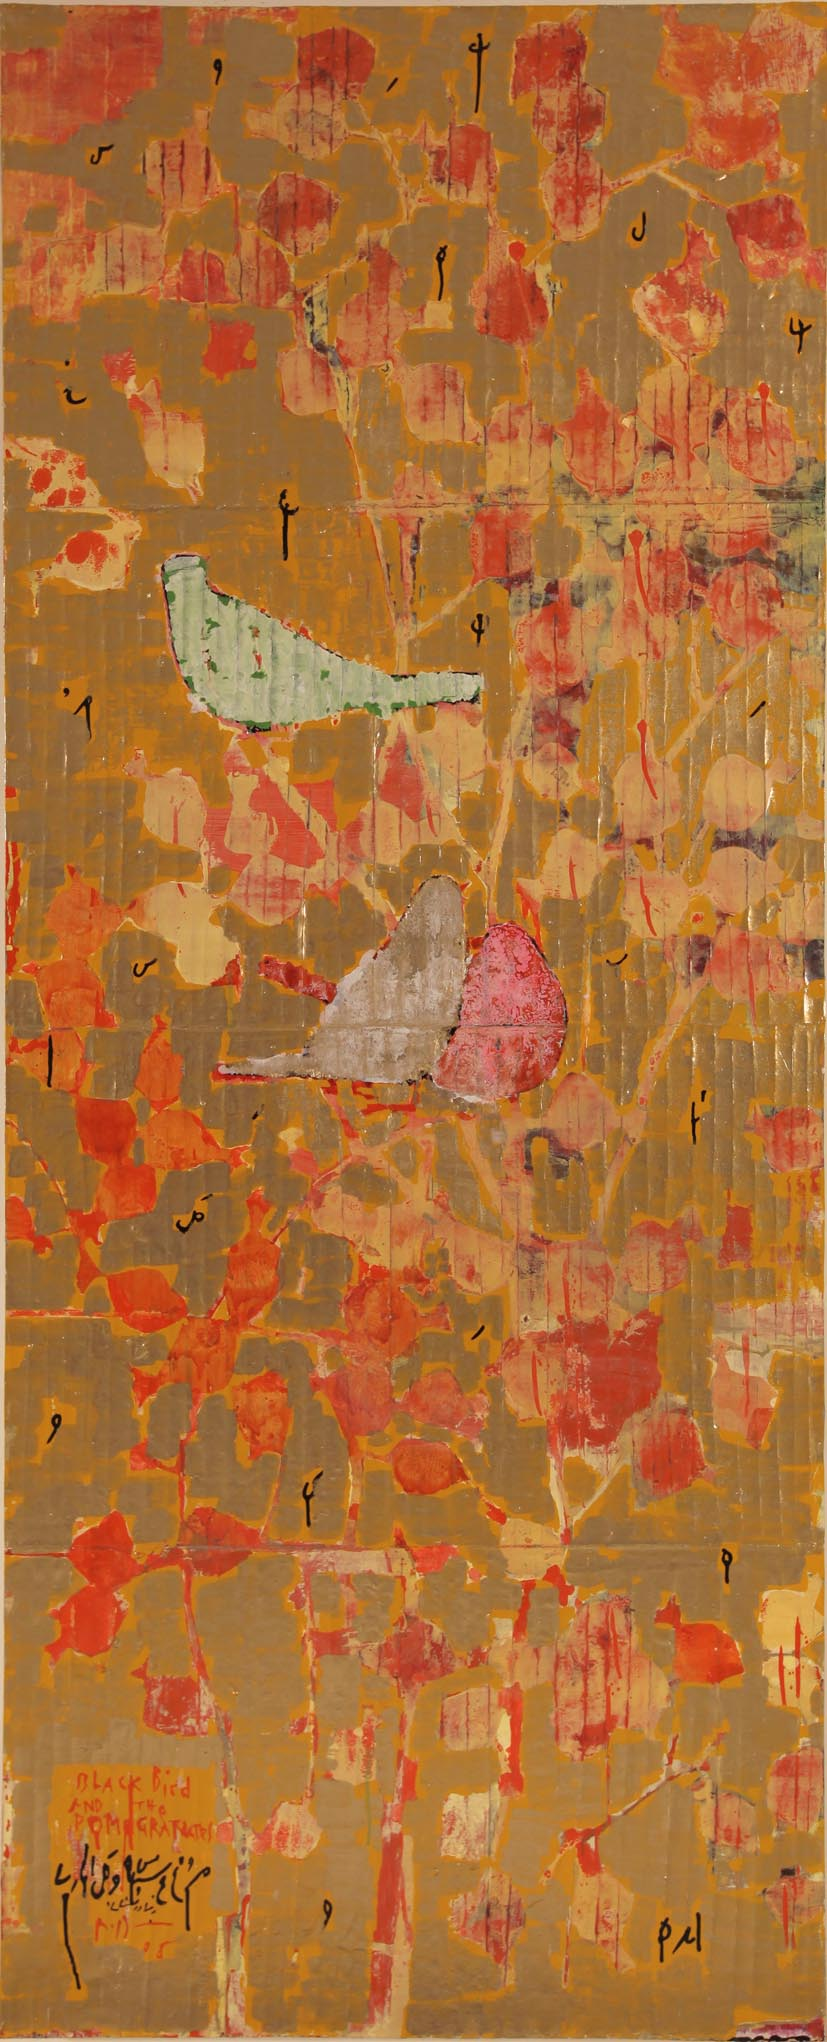 Reza Derakshani - Flower and Bird Series, Mixed Media on Canvas 220x90cm, 2009, 30000dollars.JPG